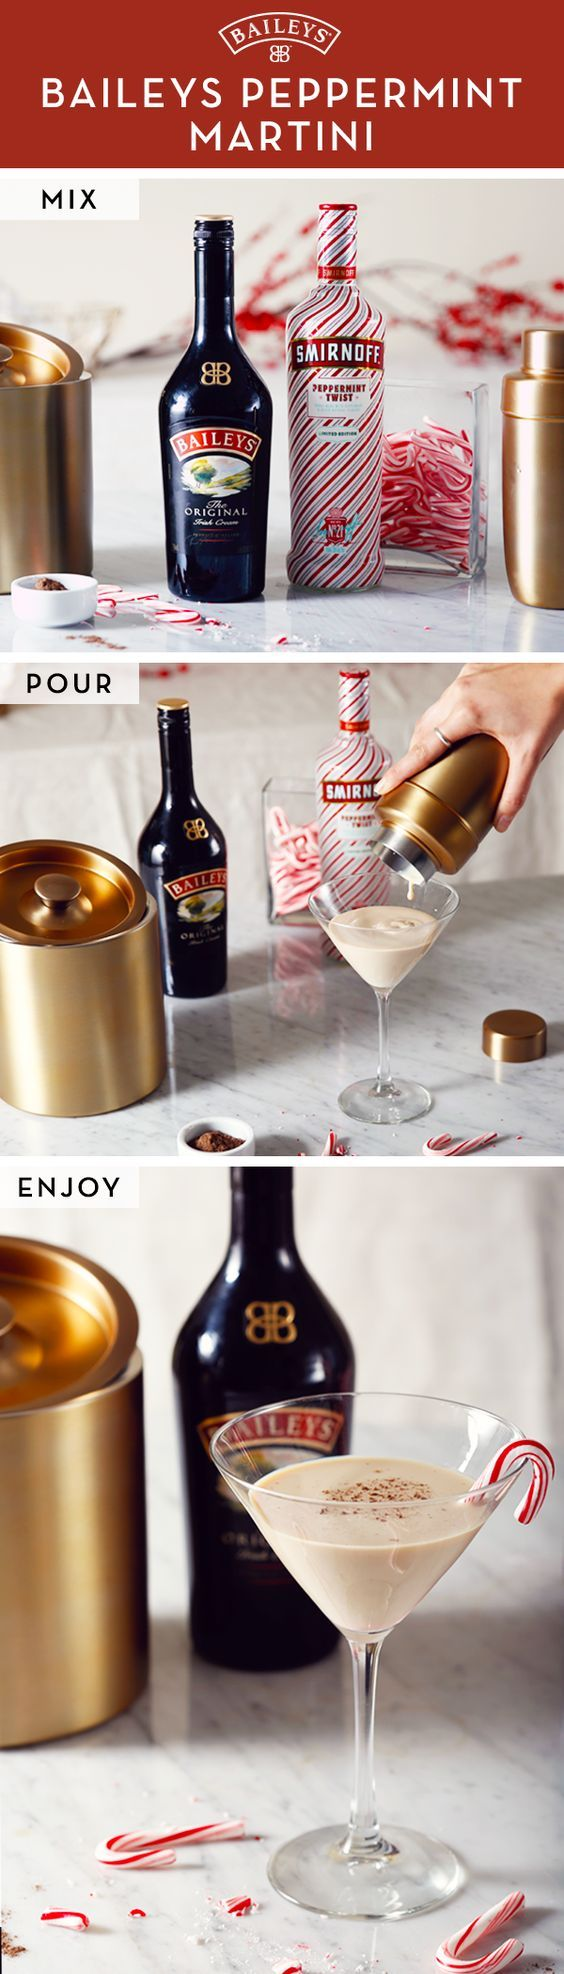 Paint your martinis red & white for the holidays! This sweet Baileys™ cocktail has the perfect hint of peppermint and vodka. If you're hostessing this season, there's no doubt your dinner party guests will love it. Try our easy 3-step recipe and enjoy! 1. Shake 1.25oz Smirnoff® Peppermint Twist & 0.5oz Baileys™ Original Irish Cream over ice. 2. Strain into a chilled martini glass. 3. Garnish with grated nutmeg and a mini candy cane.: